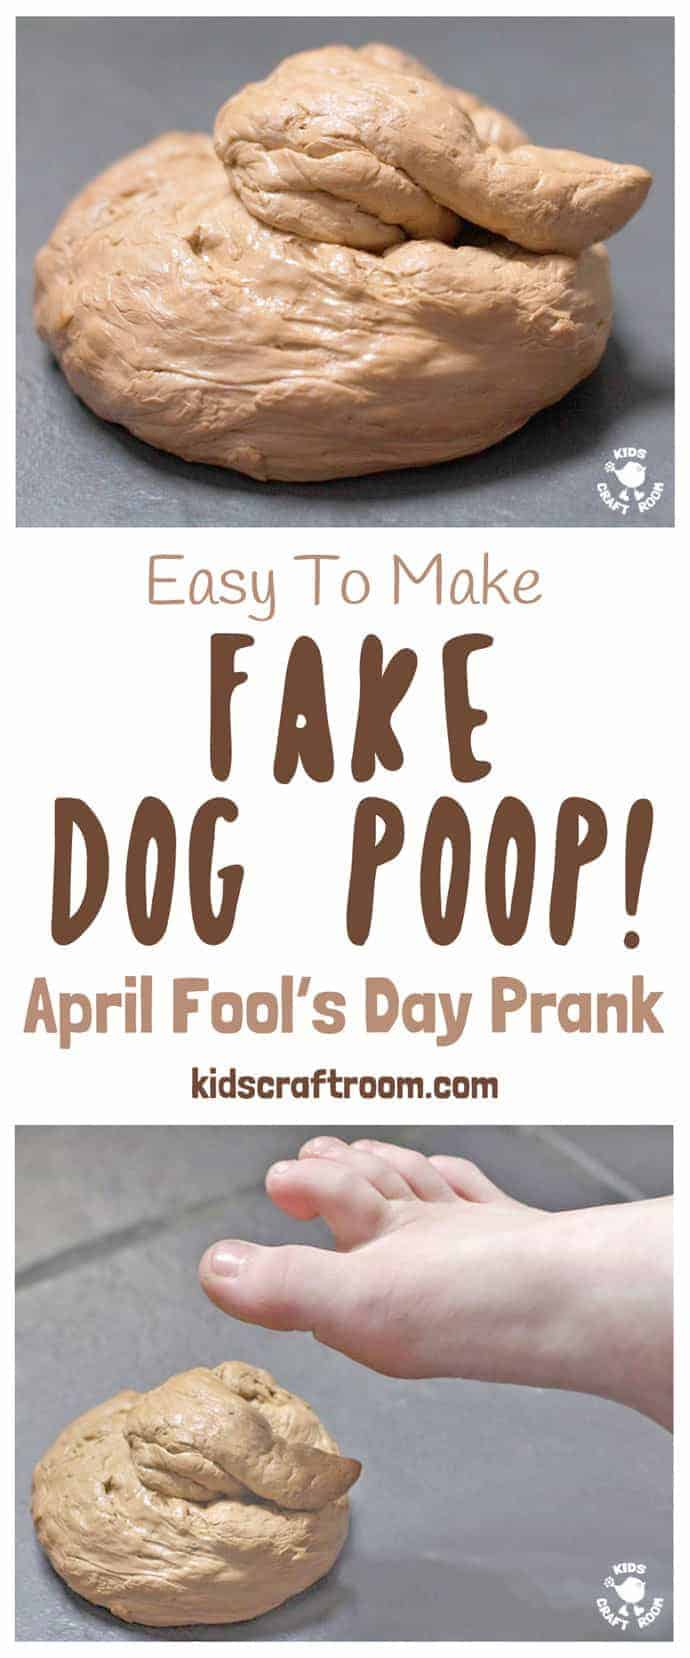 FAKE DOG POOP PRANK! Kids will love making this Fake Dog Poop! Such great fun for pranks and April Fool's Day! #aprilfool #aprilfoolsday #aprilfoolsdayprank #aprilfoolsprank #prank #joke #aprilfoolsjoke #aprilfoolsdayjoke #fauxpoop #fakepoop #trick #jest #poo #poop #dogpoop #dogdirt #kidsactivities #kidscraftroom